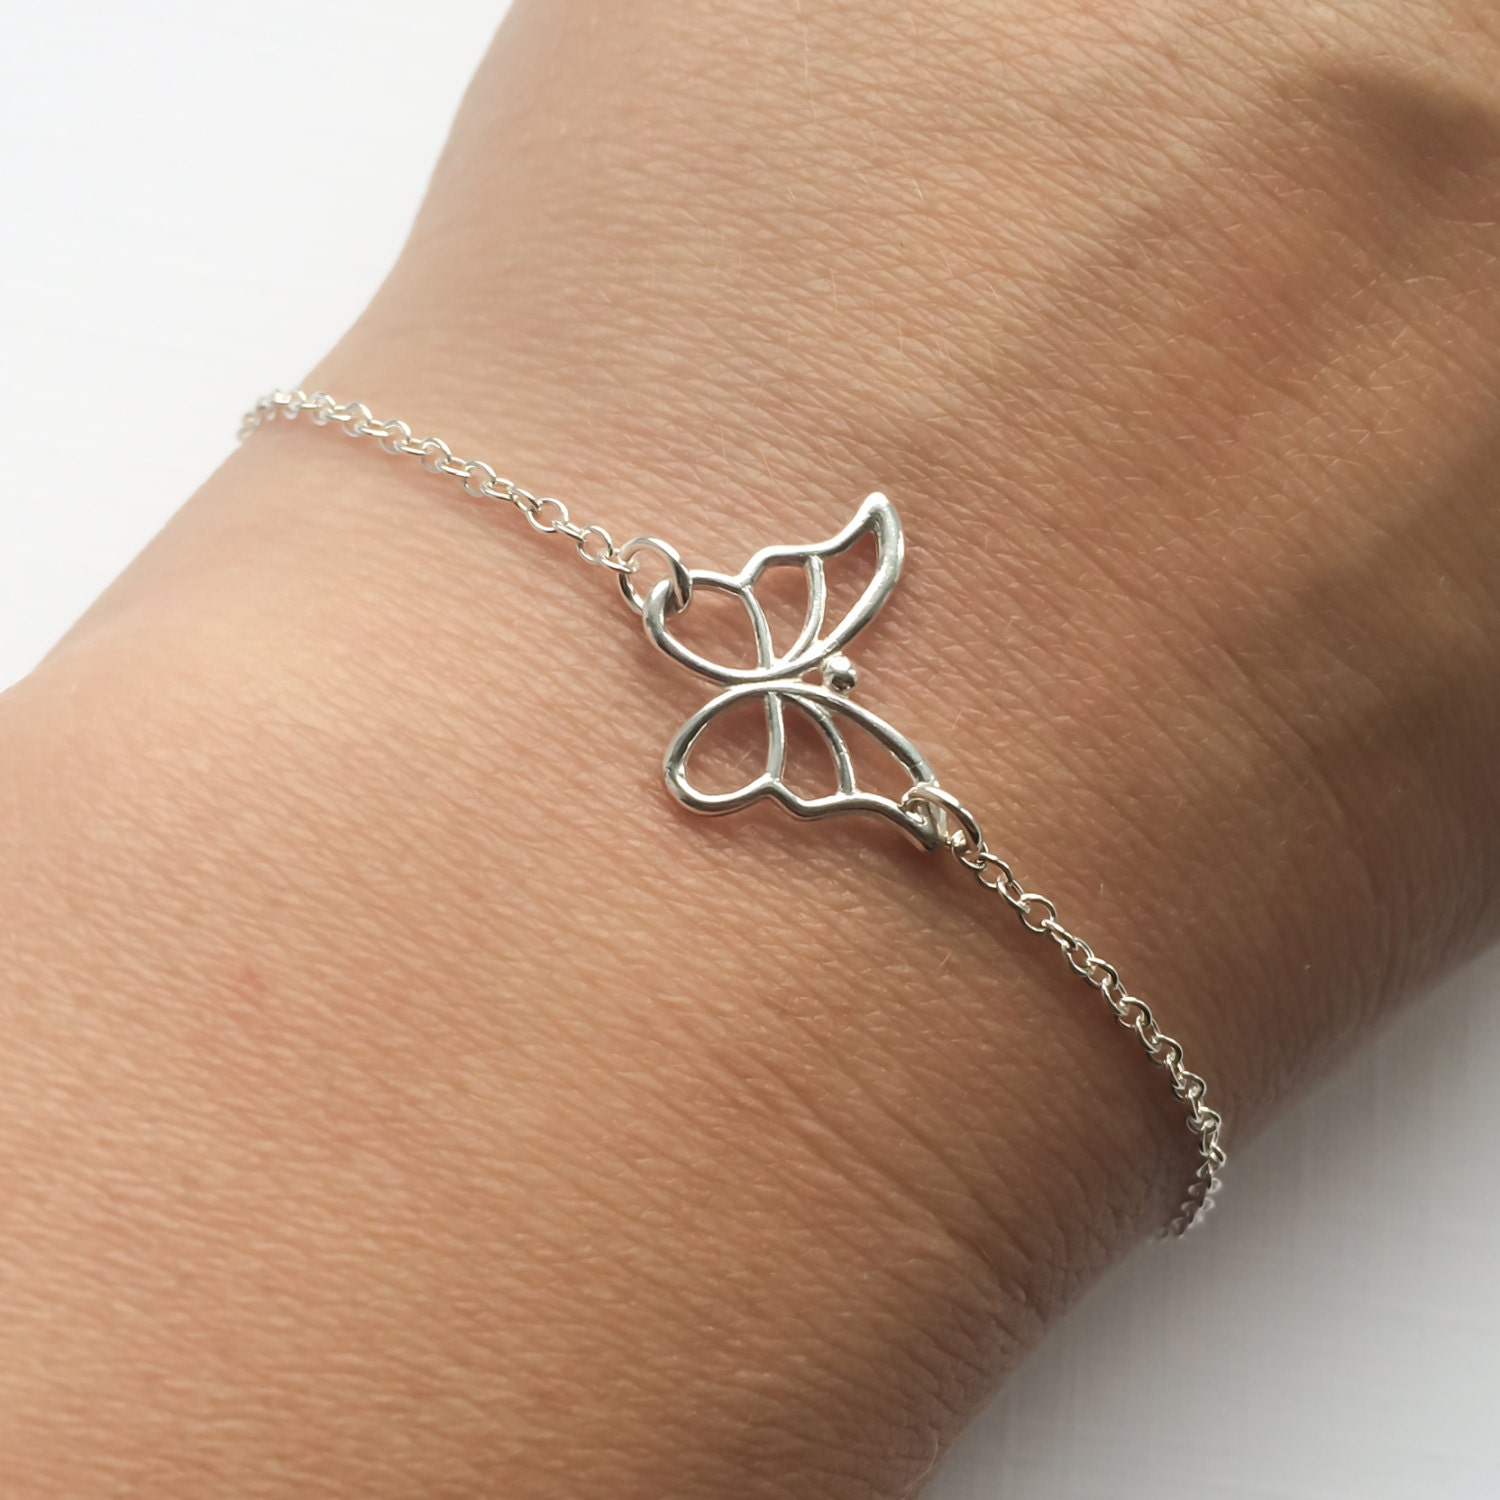 Sterling Silver Butterfly Bracelet. Wedding Chinese Gold Jewellery. Rold Gold Gold Jewellery. 24kt Gold Gold Jewellery. Domed Gold Jewellery. Banner Gold Jewellery. Full Stone Gold Jewellery. Nakshi Necklace Gold Jewellery. Sania Mirza Gold Jewellery